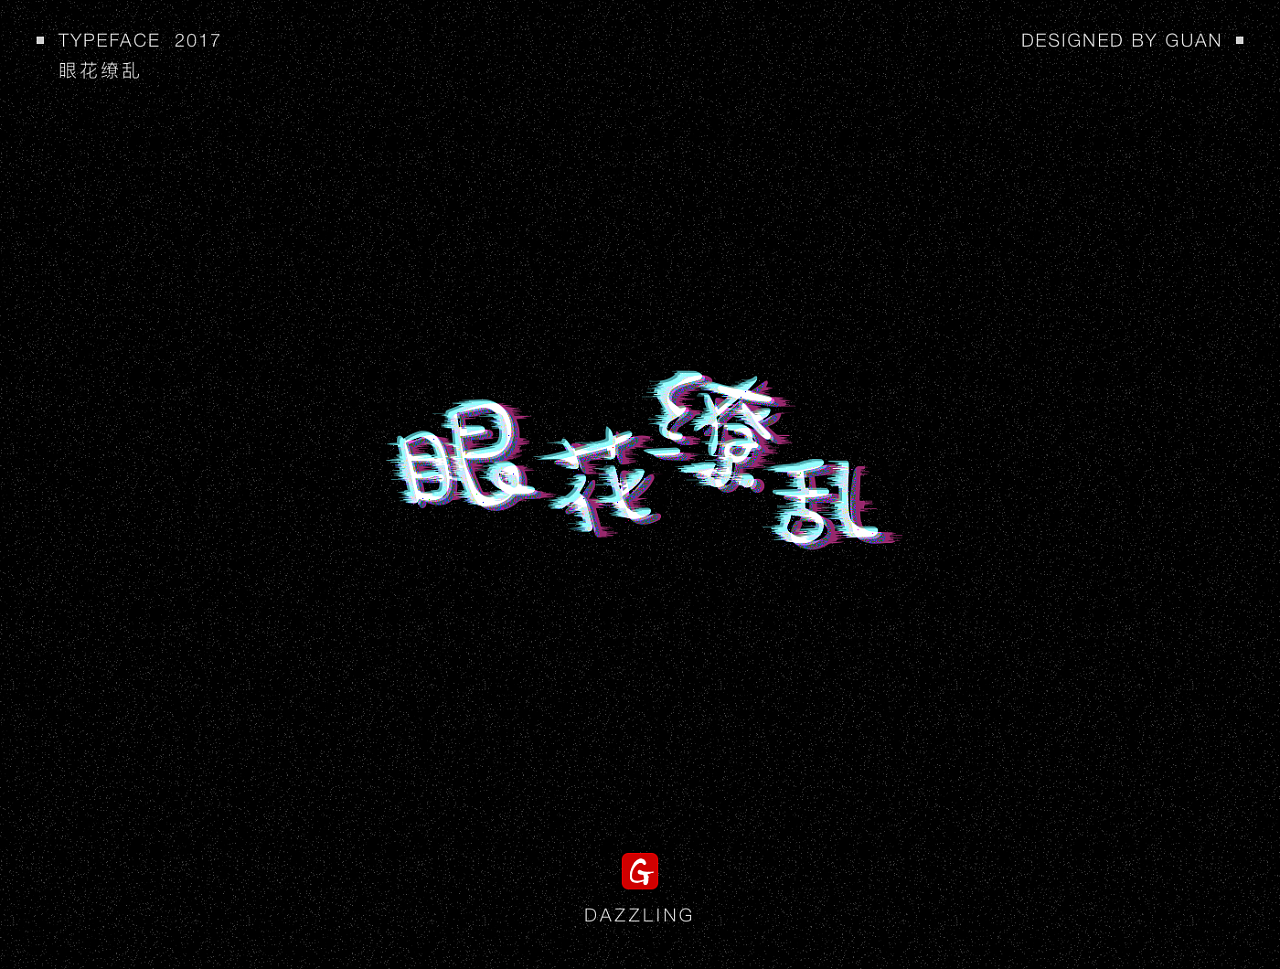 chinesefontdesign.com 2017 09 19 10 53 49 353090 20P Super fashionable Chinese font style design